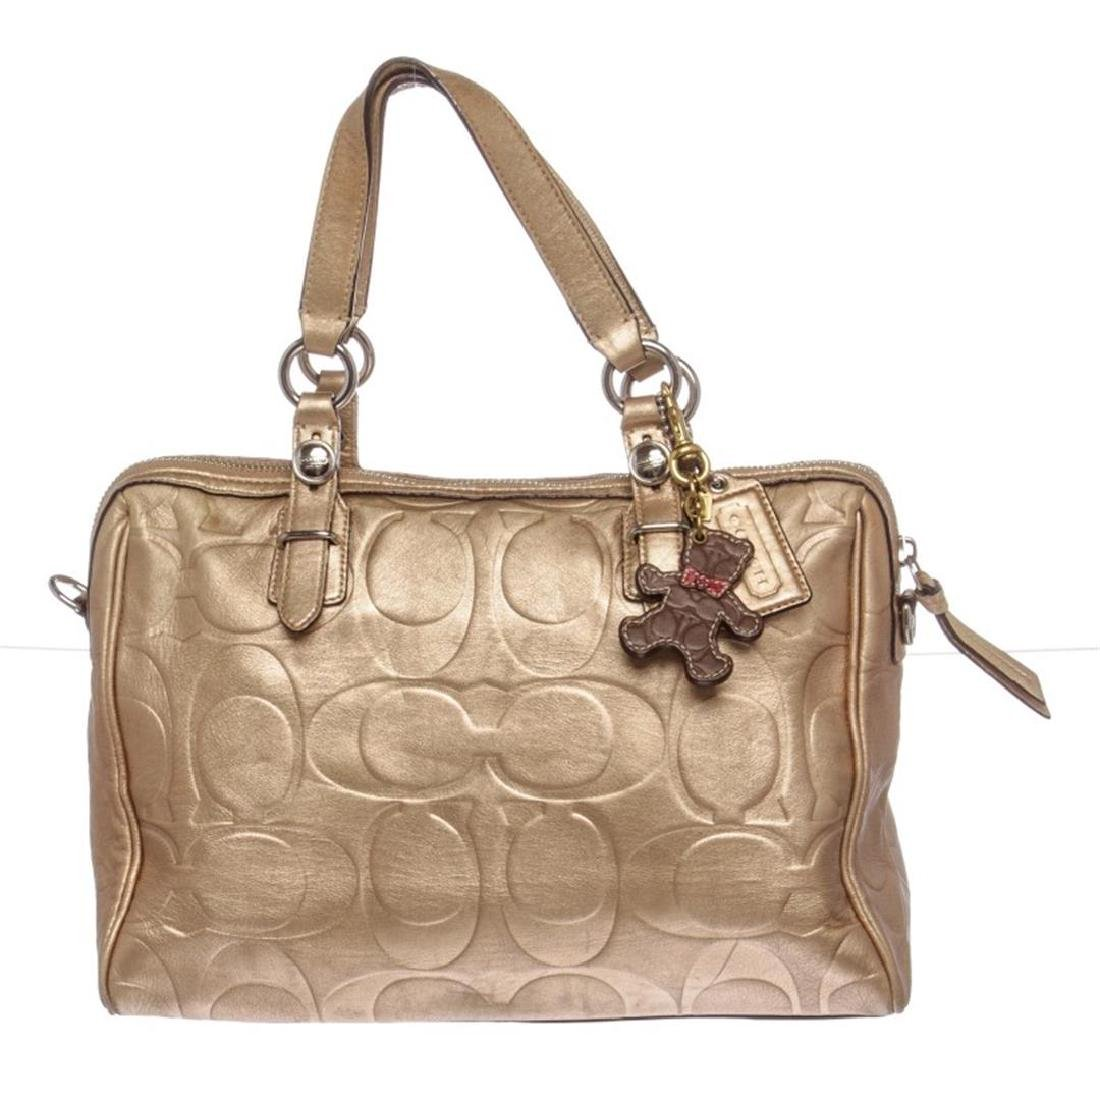 Coach Metallic Gold Monogram Leather Tote Bag